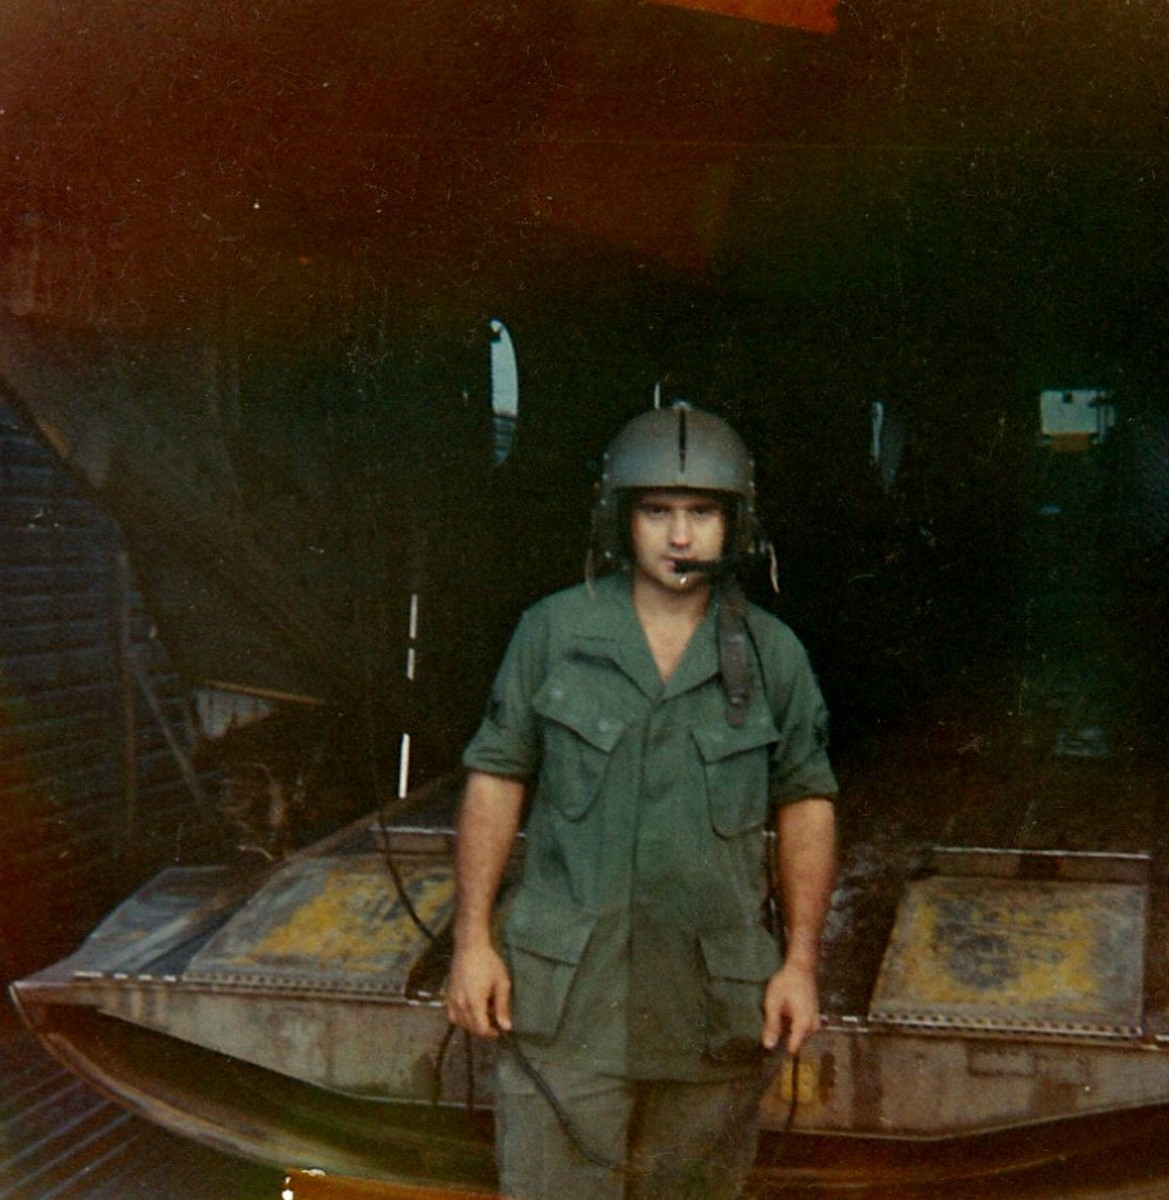 This is my brother, John, while he was in Vietnam.